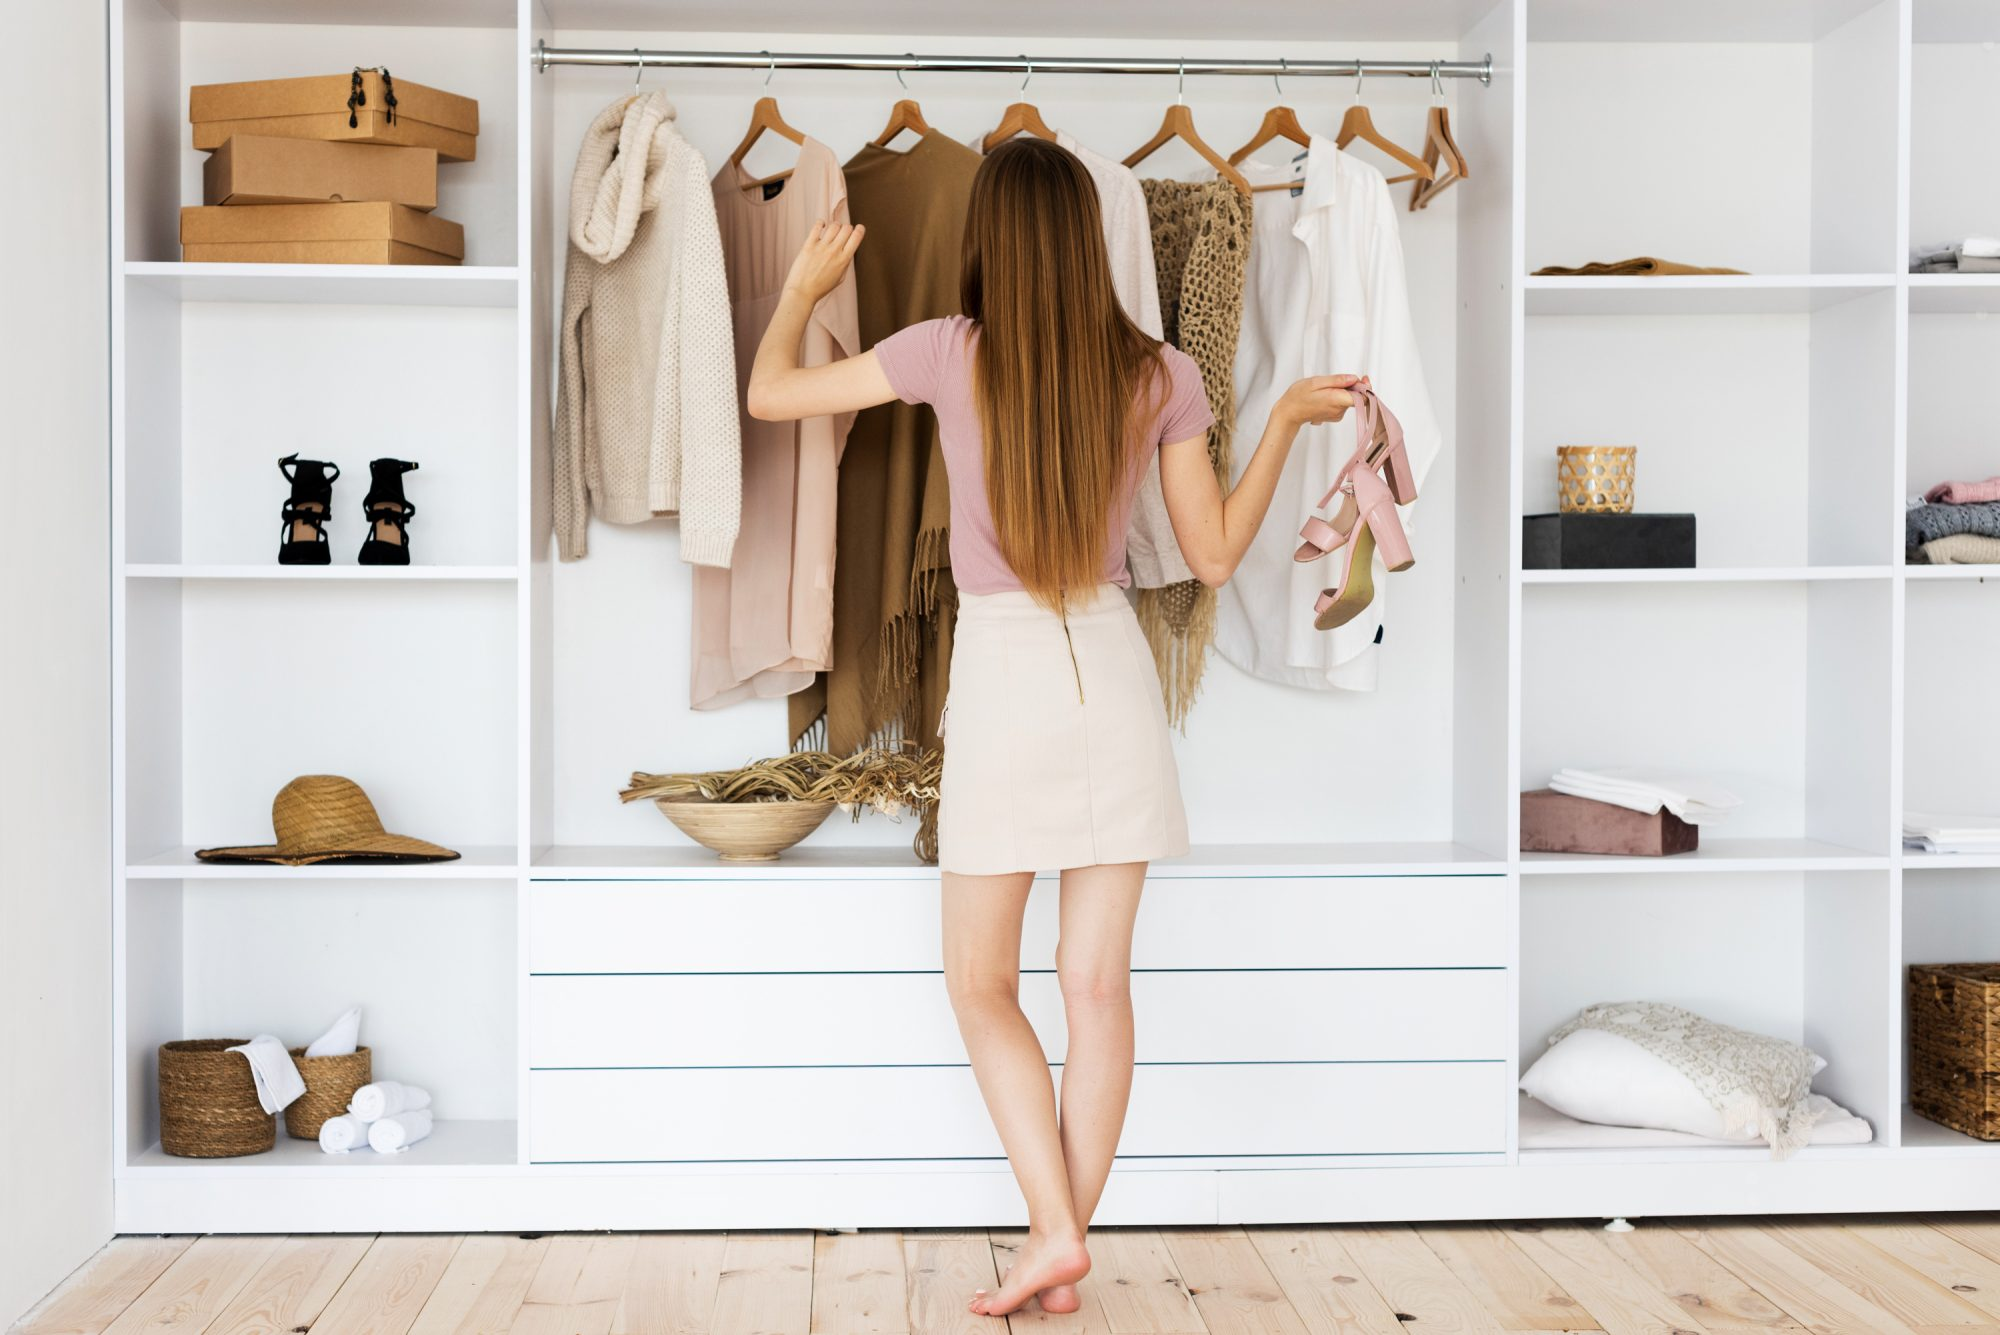 Tips to Make Your Own Clothes at Home